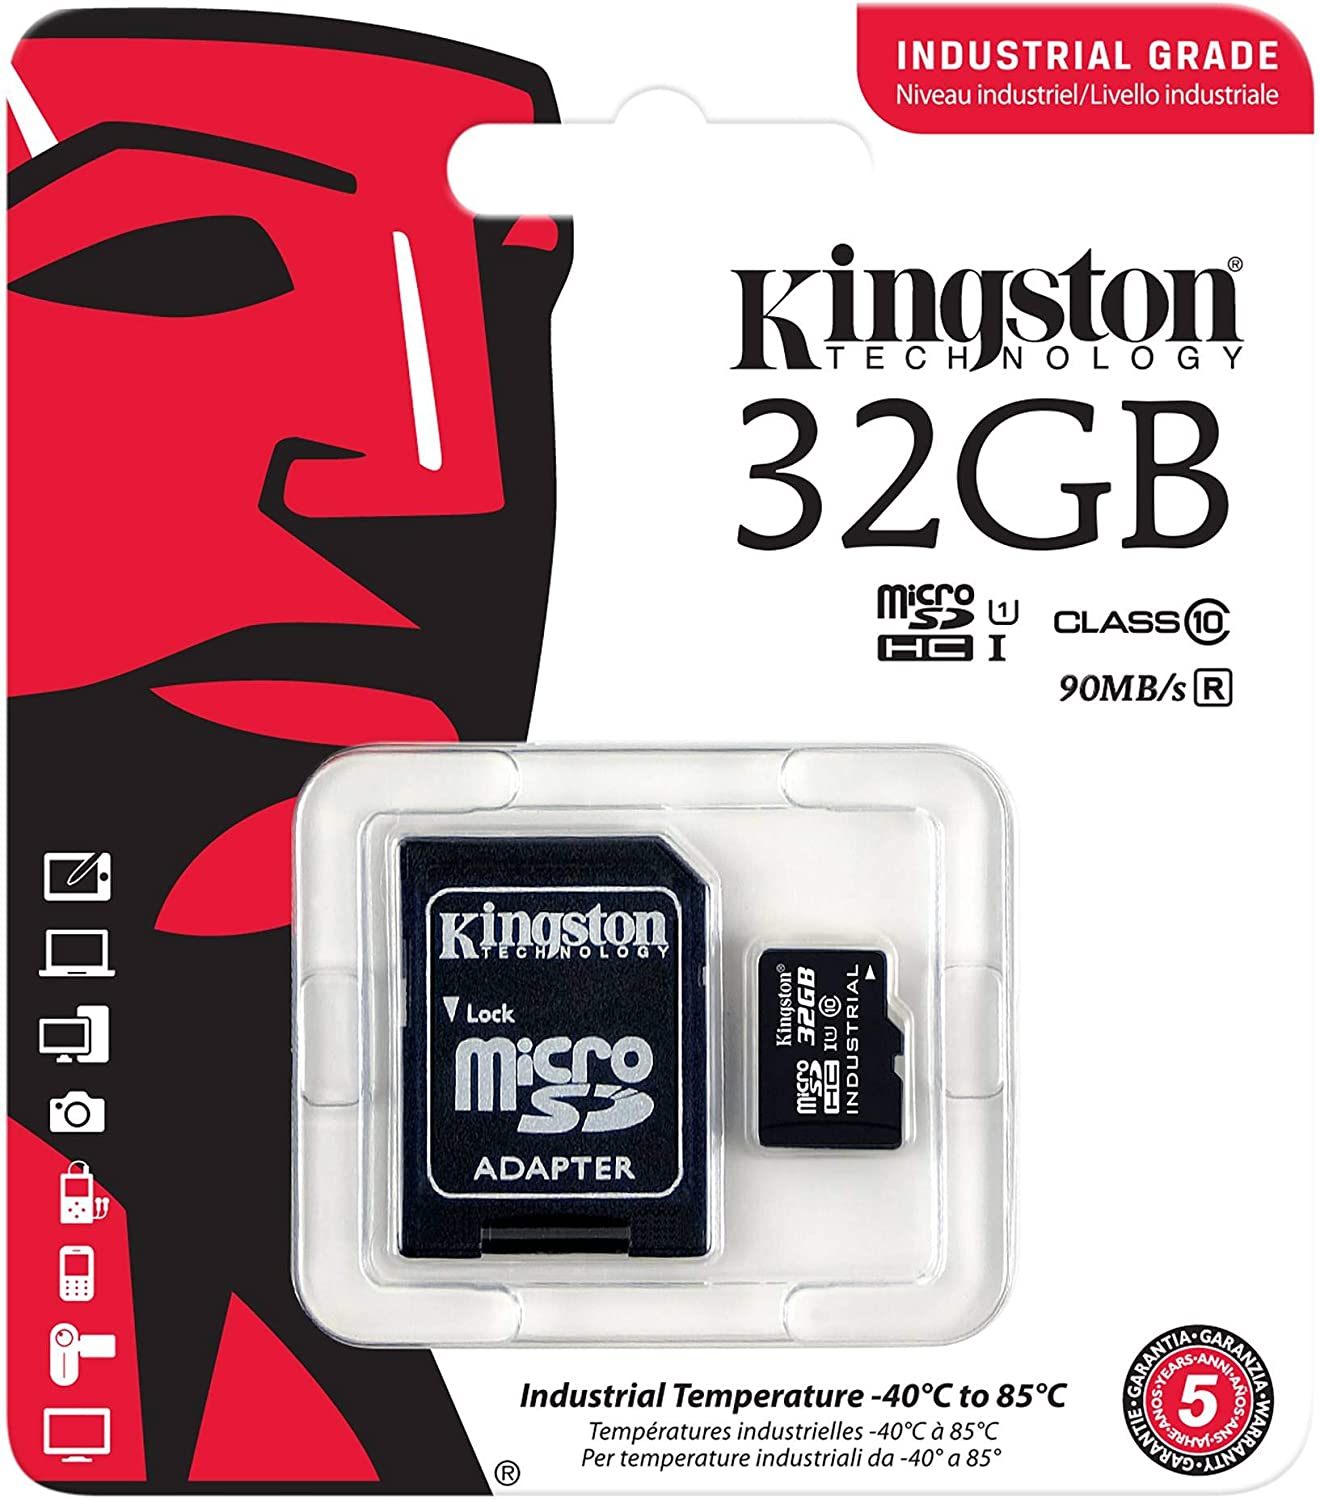 90MBs Works for Kingston Kingston Industrial Grade 32GB Samsung SM-G988UZKEXAA MicroSDHC Card Verified by SanFlash.